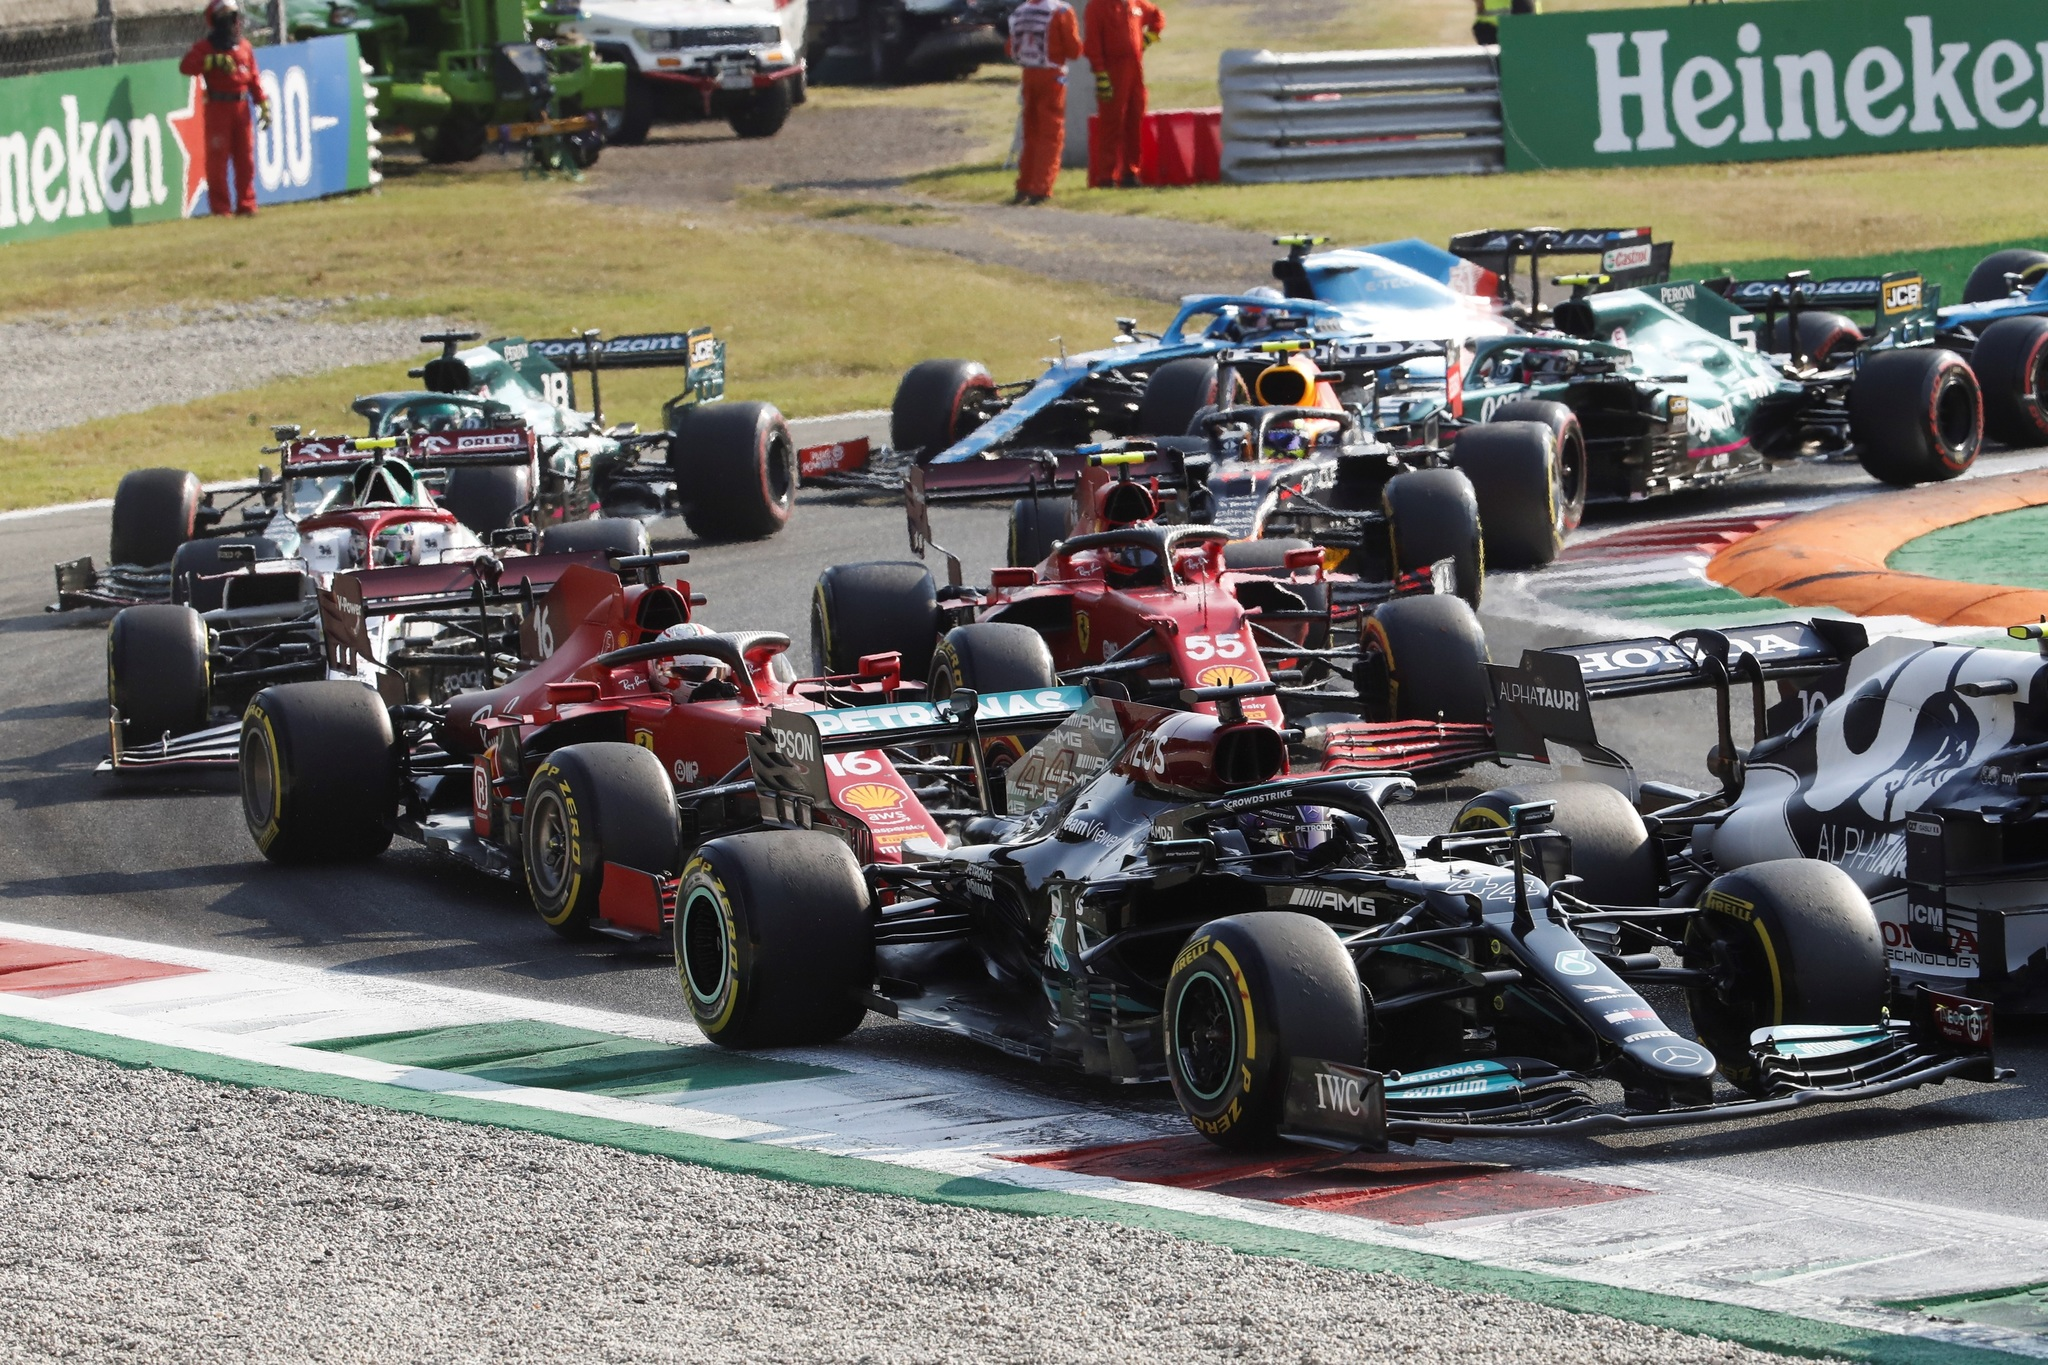 Monza (Italy), 11/09/2021.- British Formula One driver Lewis lt;HIT gt;Hamilton lt;/HIT gt; (front) of Mercedes-AMG Petronas in action during the sprint race of the Formula One Grand Prix of Italy at the Autodromo Nazionale Monza race track in Monza, Italy, 11 September 2021. The 2021 Formula One Grand Prix of Italy will take place on 12 September 2021. (Fórmula Uno, Italia) EFE/EPA/MATTEO BAZZI